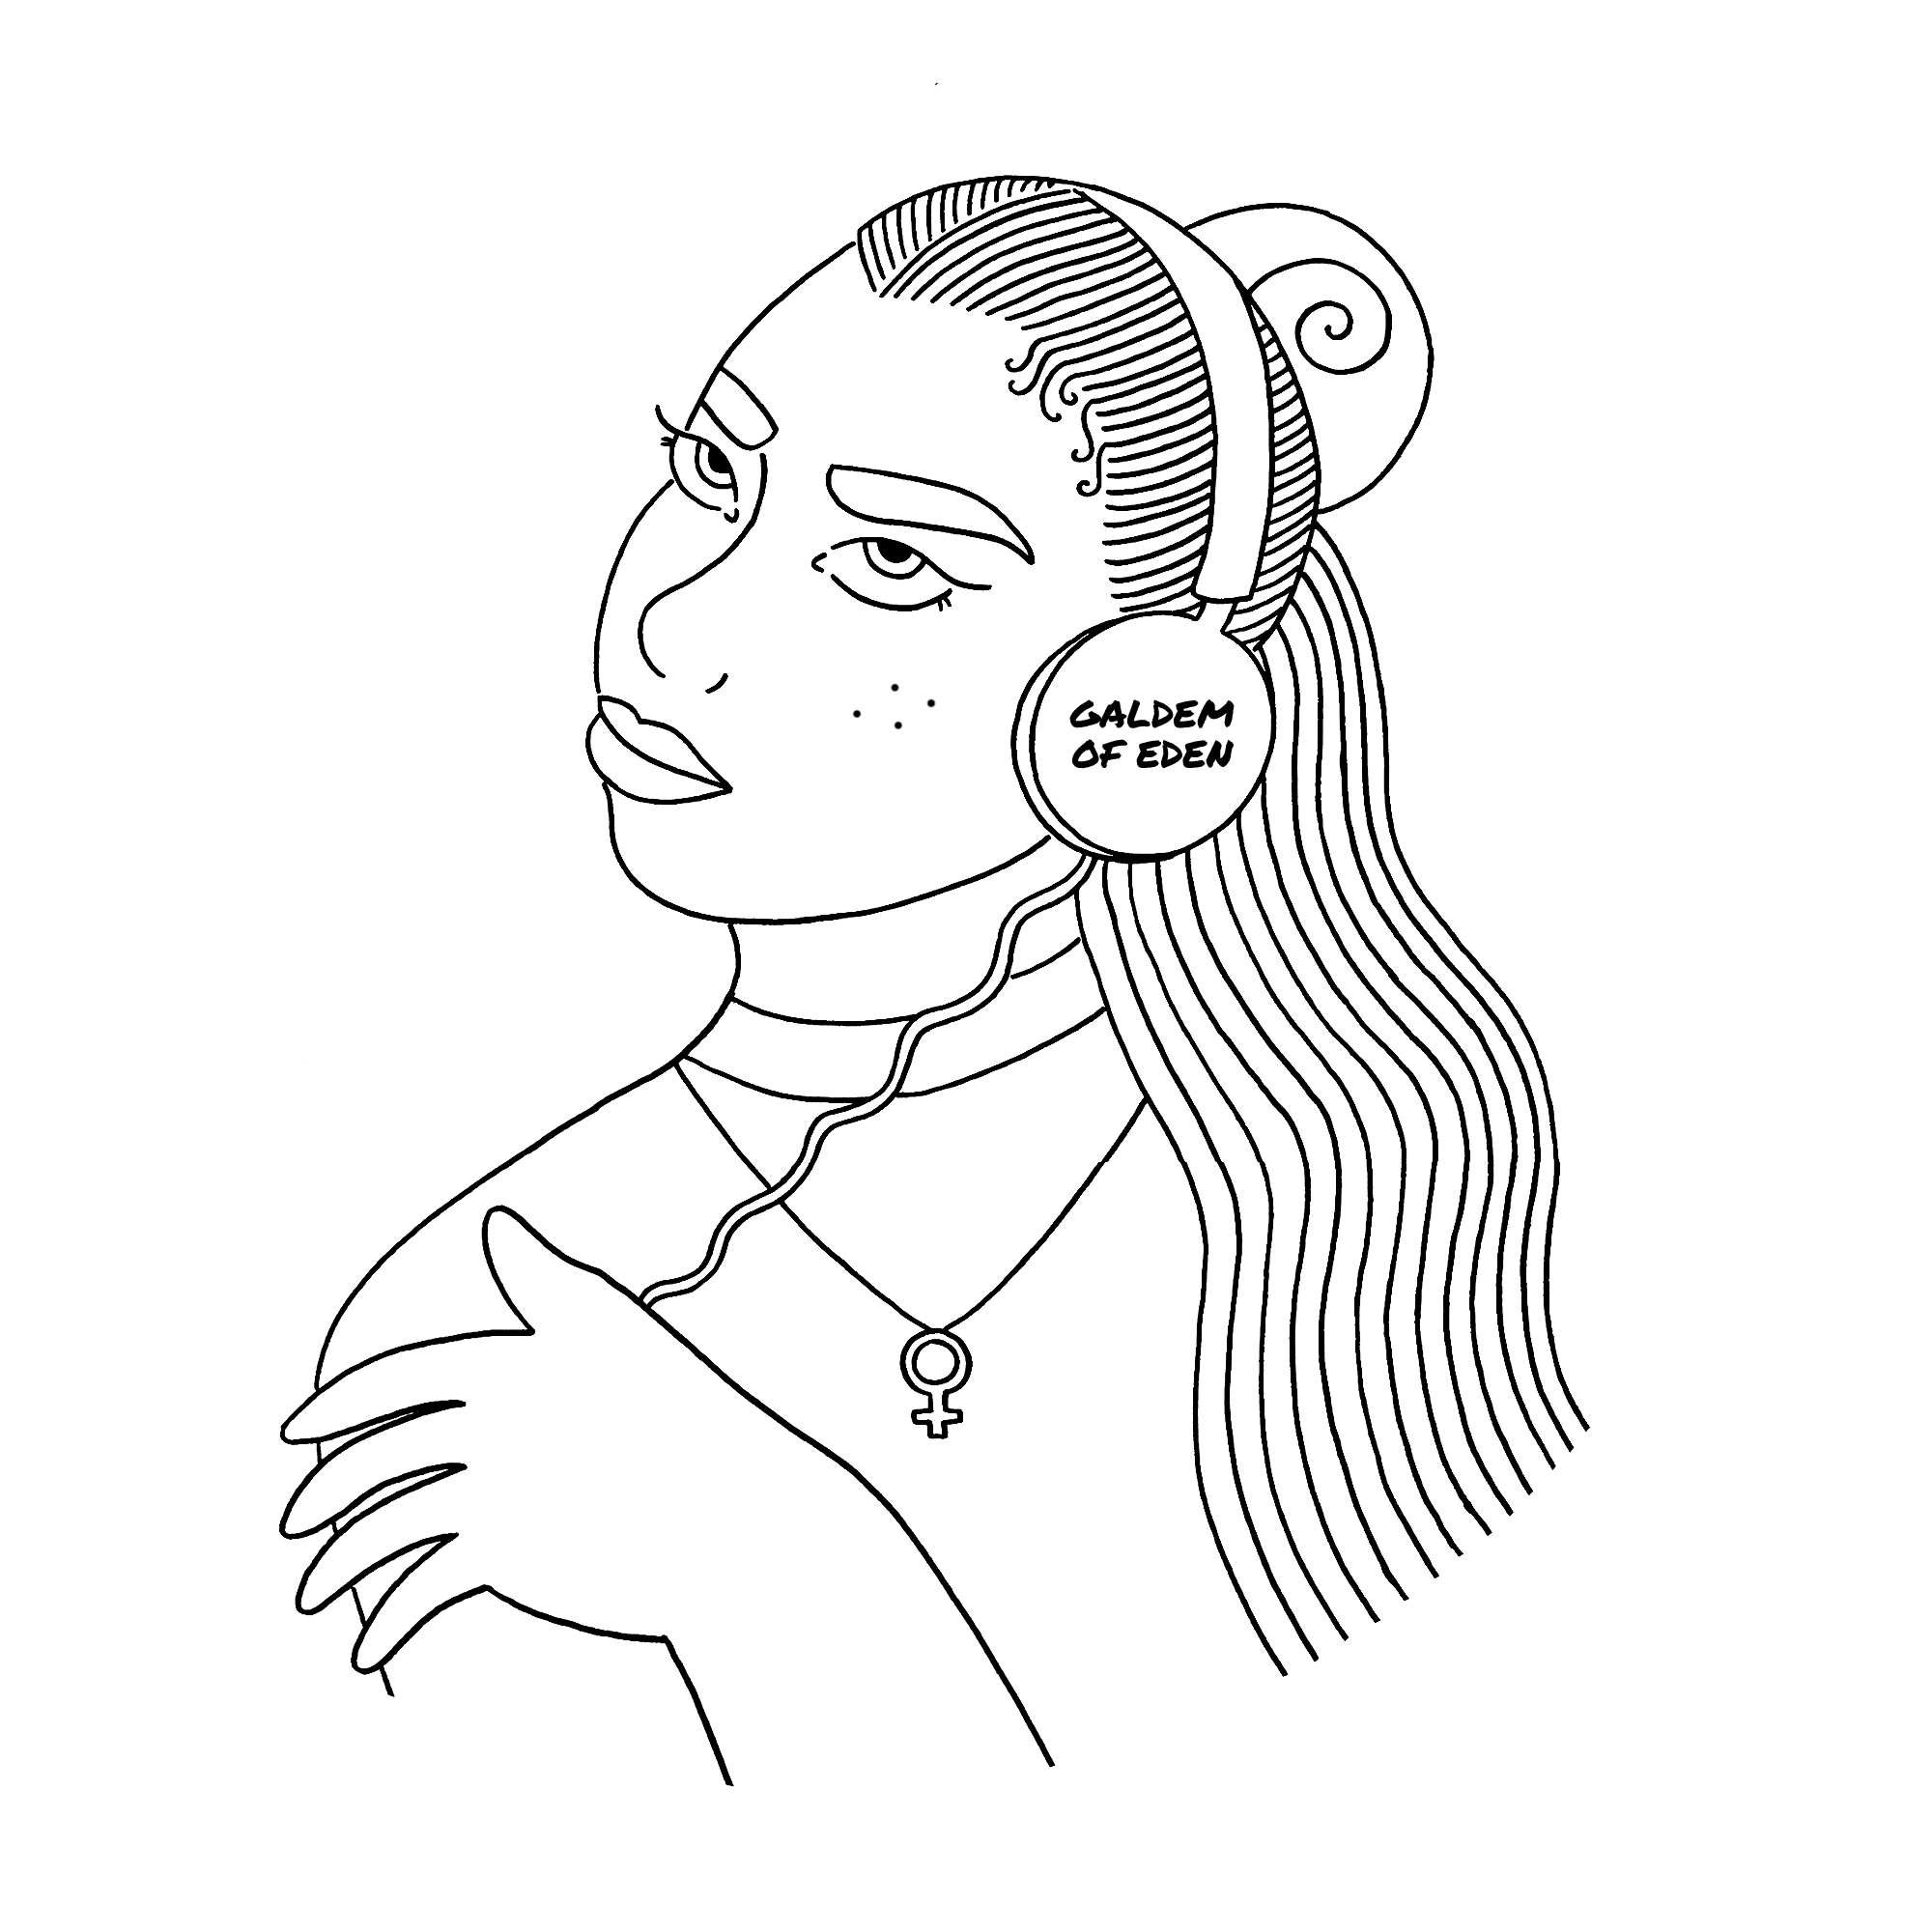 Black without background.png